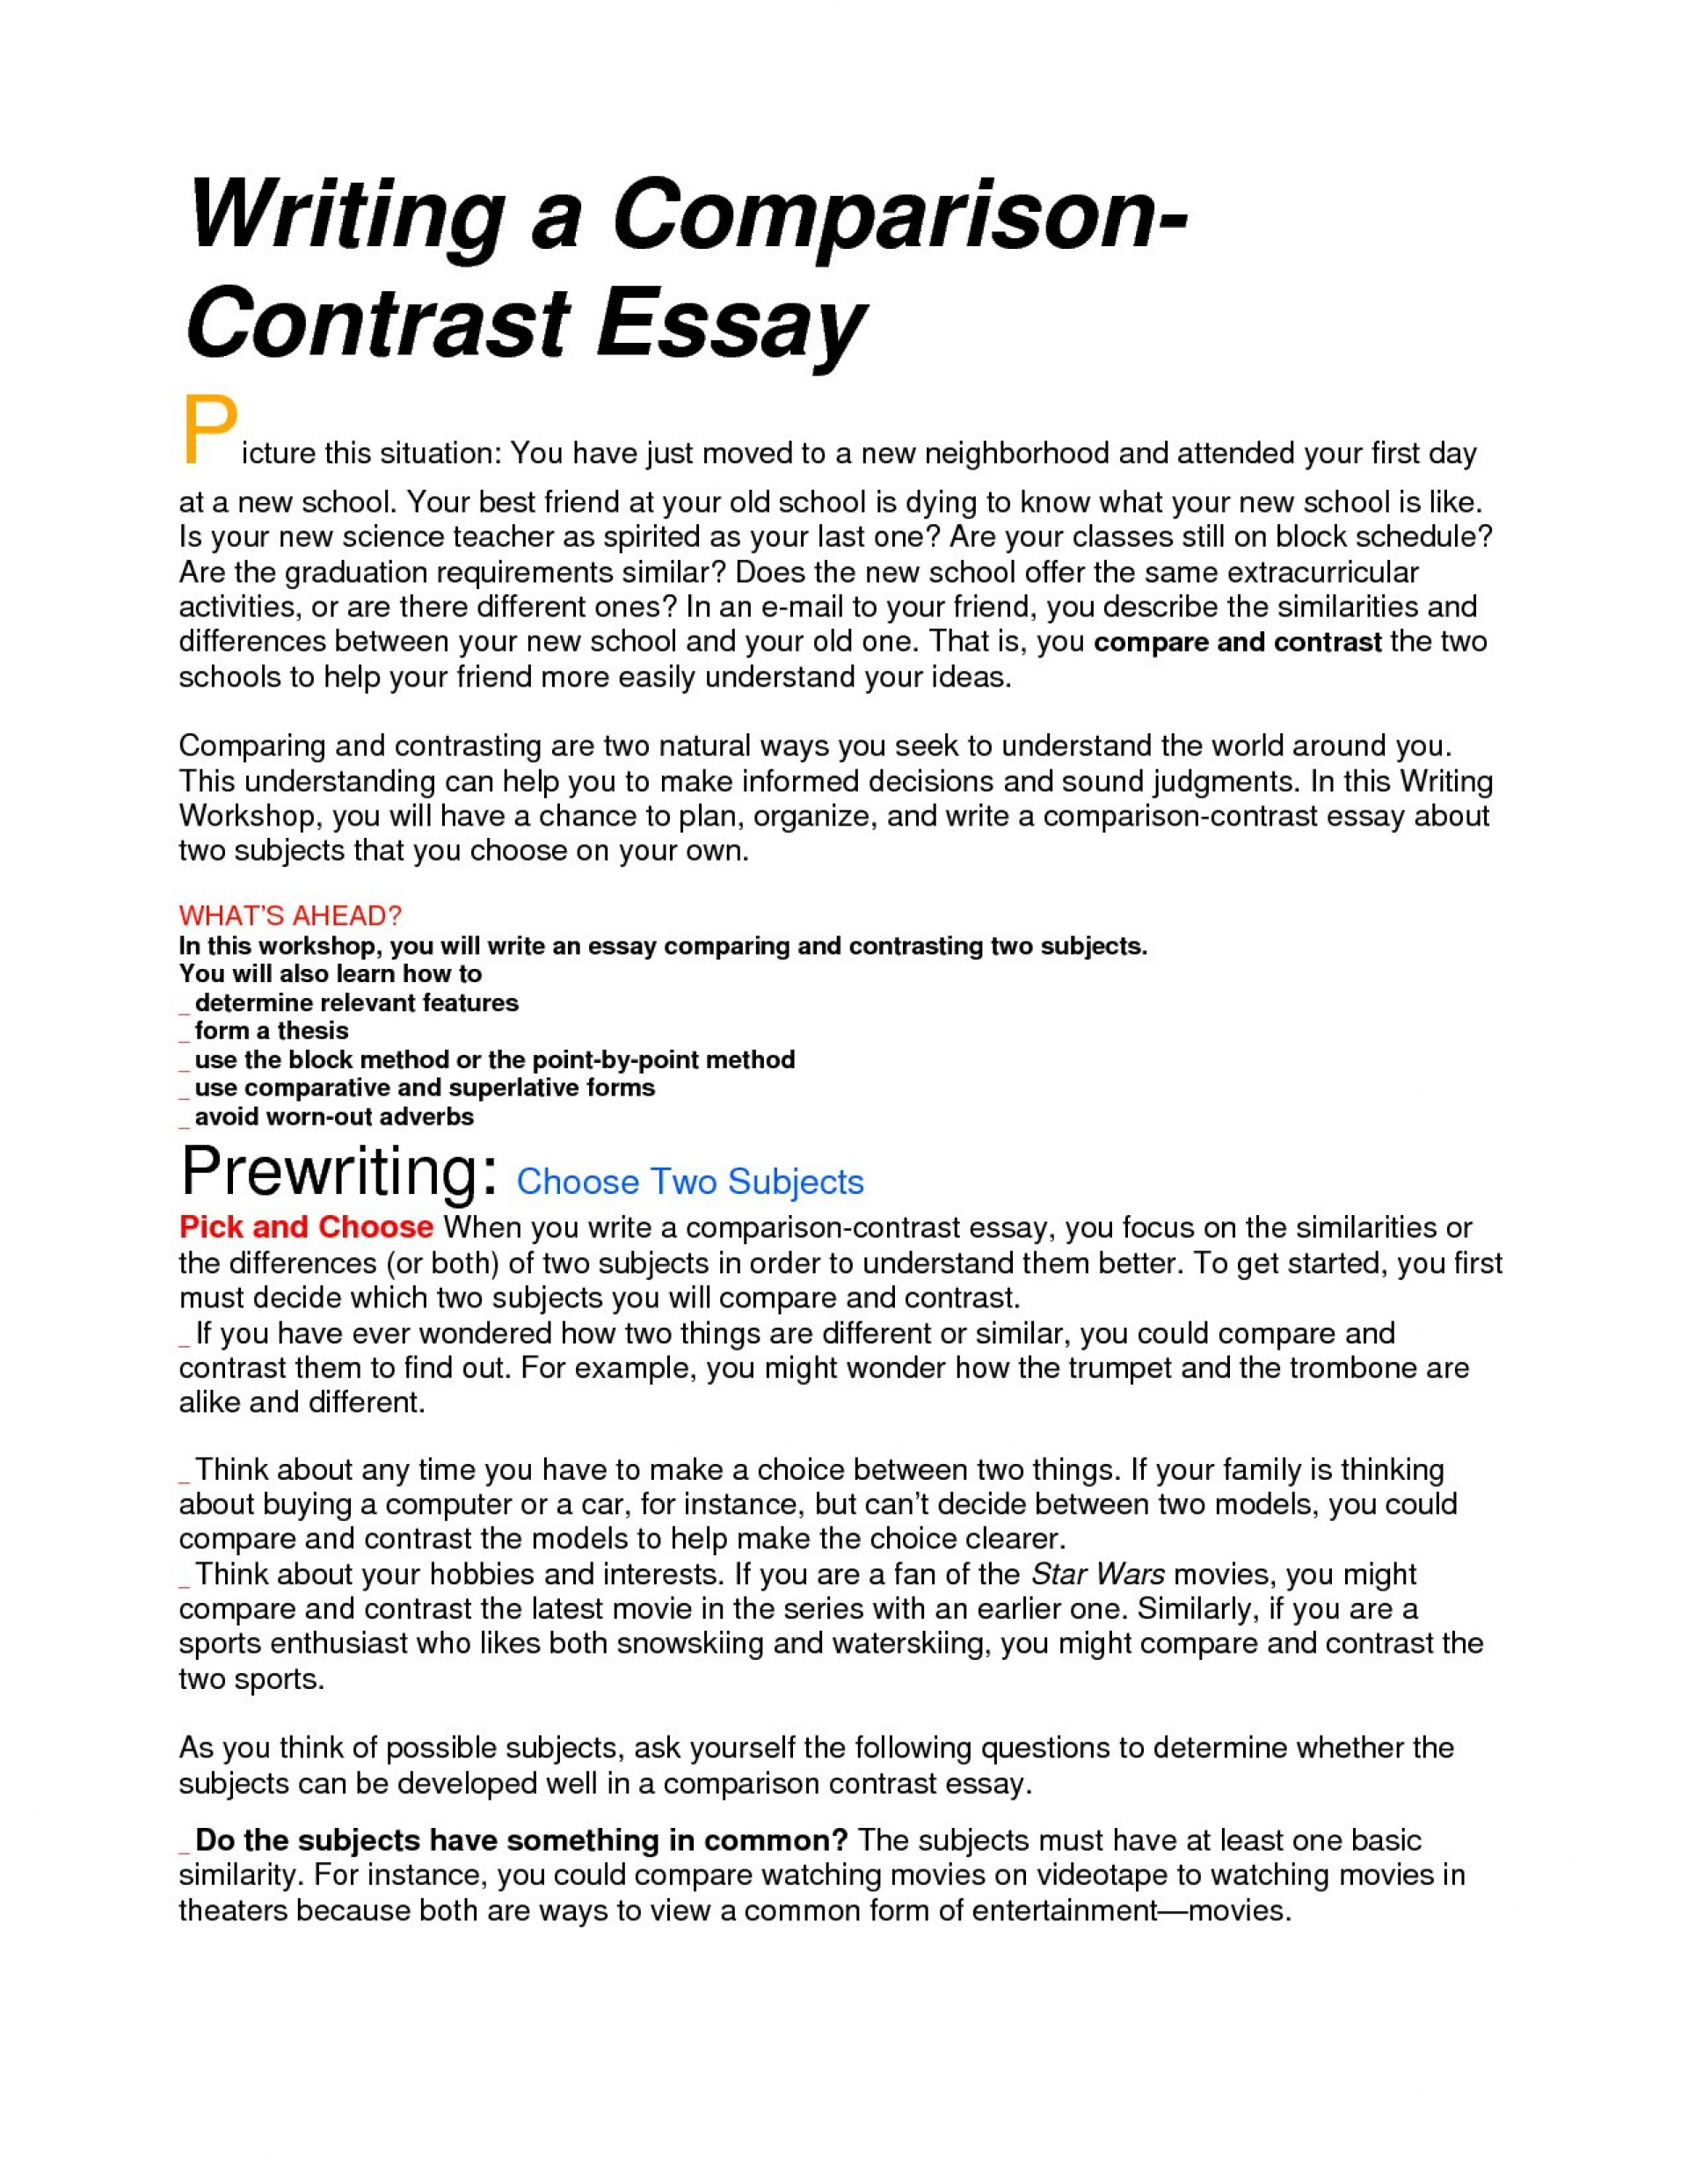 021 Research Essay Introduction Examples How To Start Paper About Kangk Pdf Yourselfllege Opening High School Middlempare Andntrast Beginnings University Phenomenal Compare And Contrast College Outline For Students Paragraph 1920